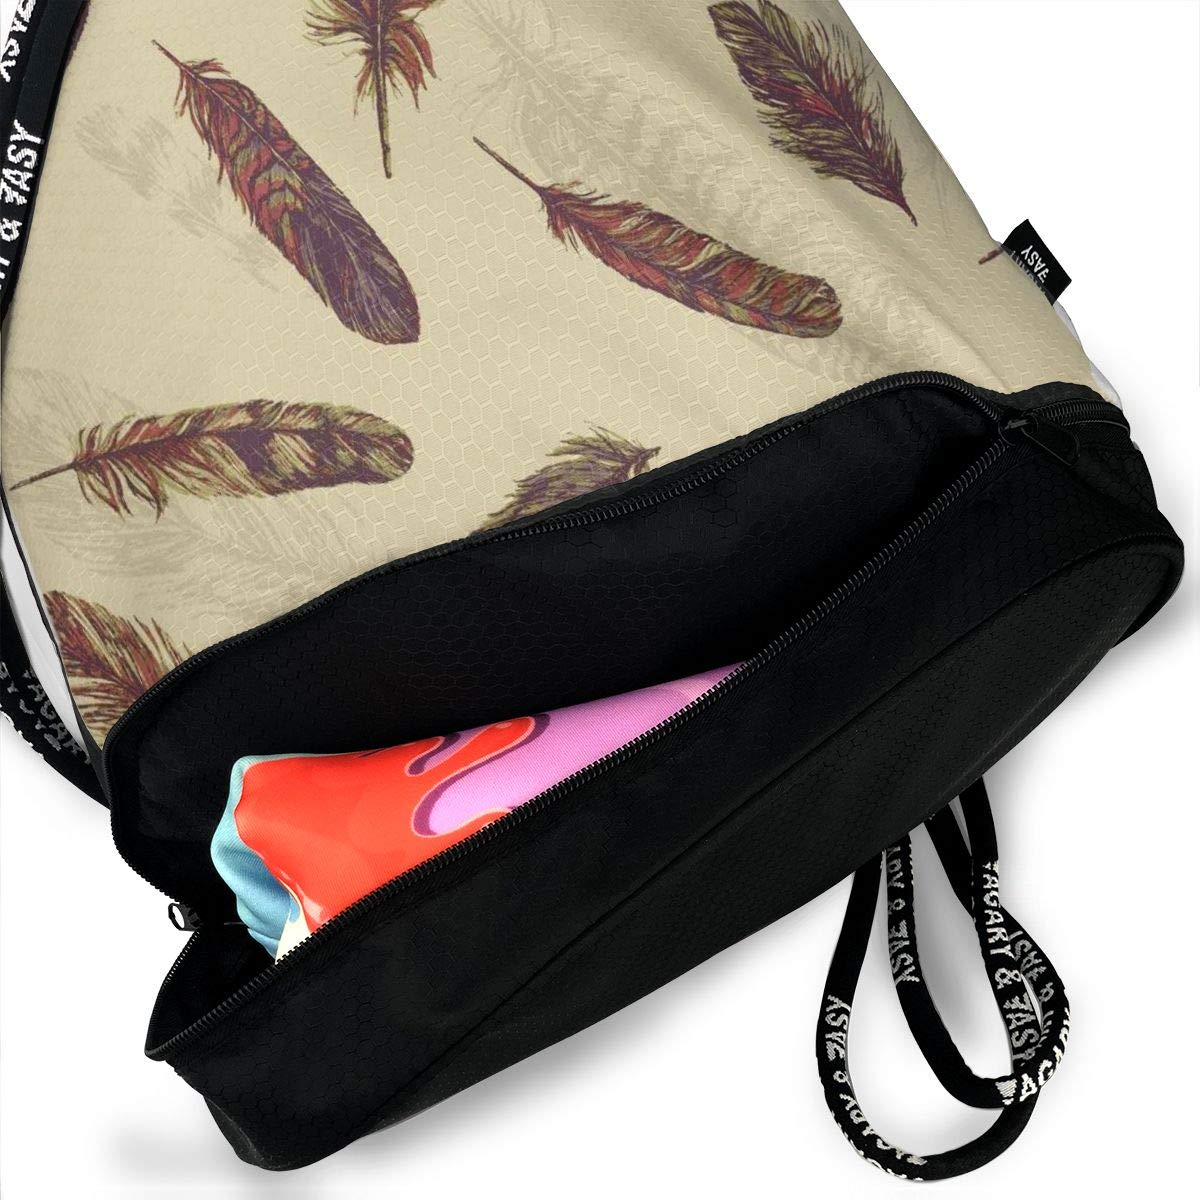 Vintage Arthouse Plume Feather Drawstring Bag Multipurpose Bundle Dance Bag Sack Pack